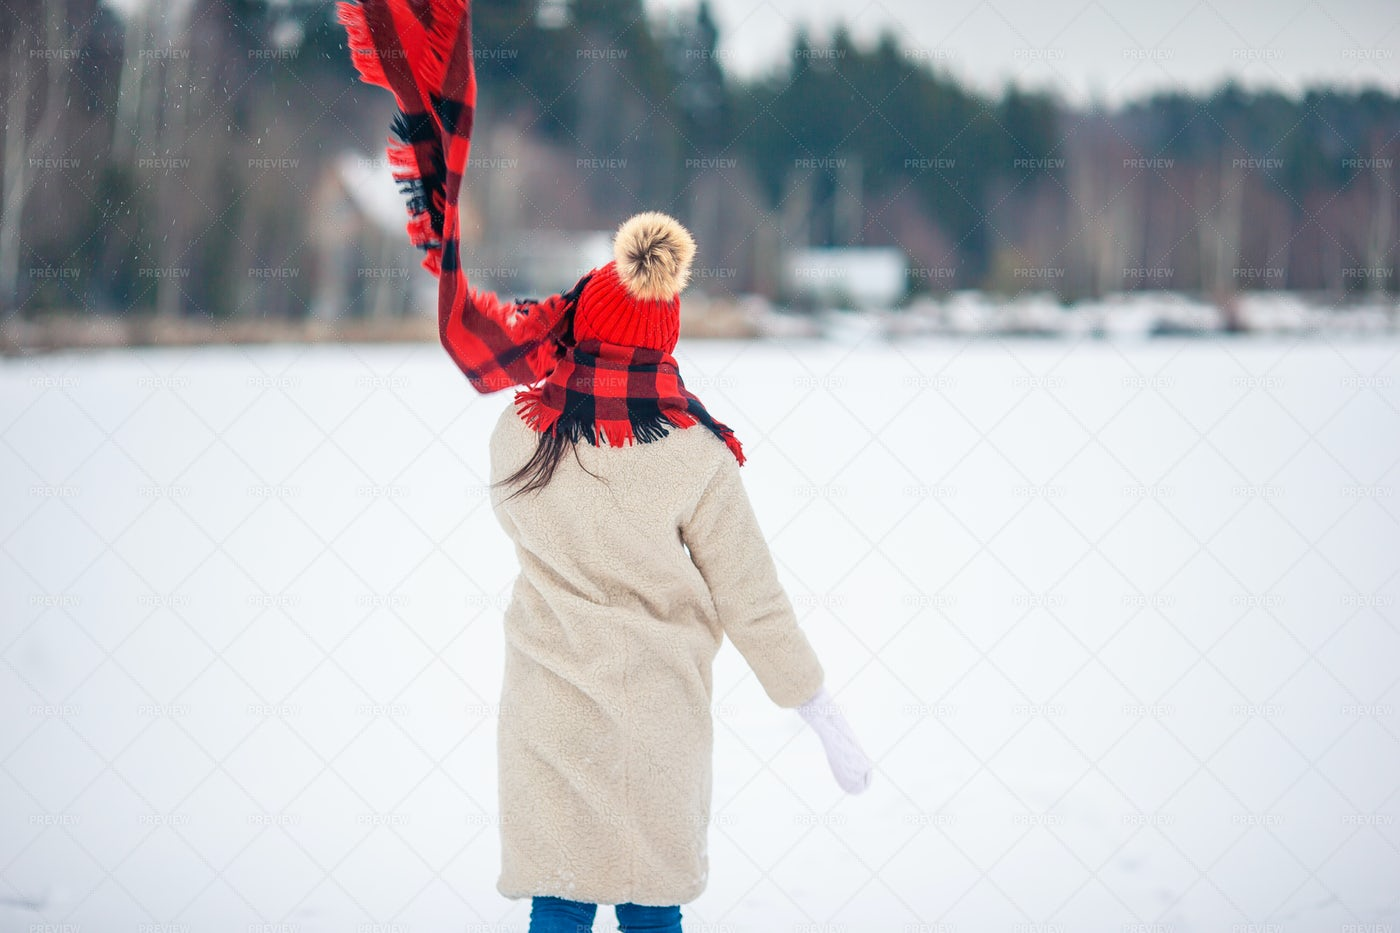 Woman In Snow Day Outdoors At The Forest: Stock Photos